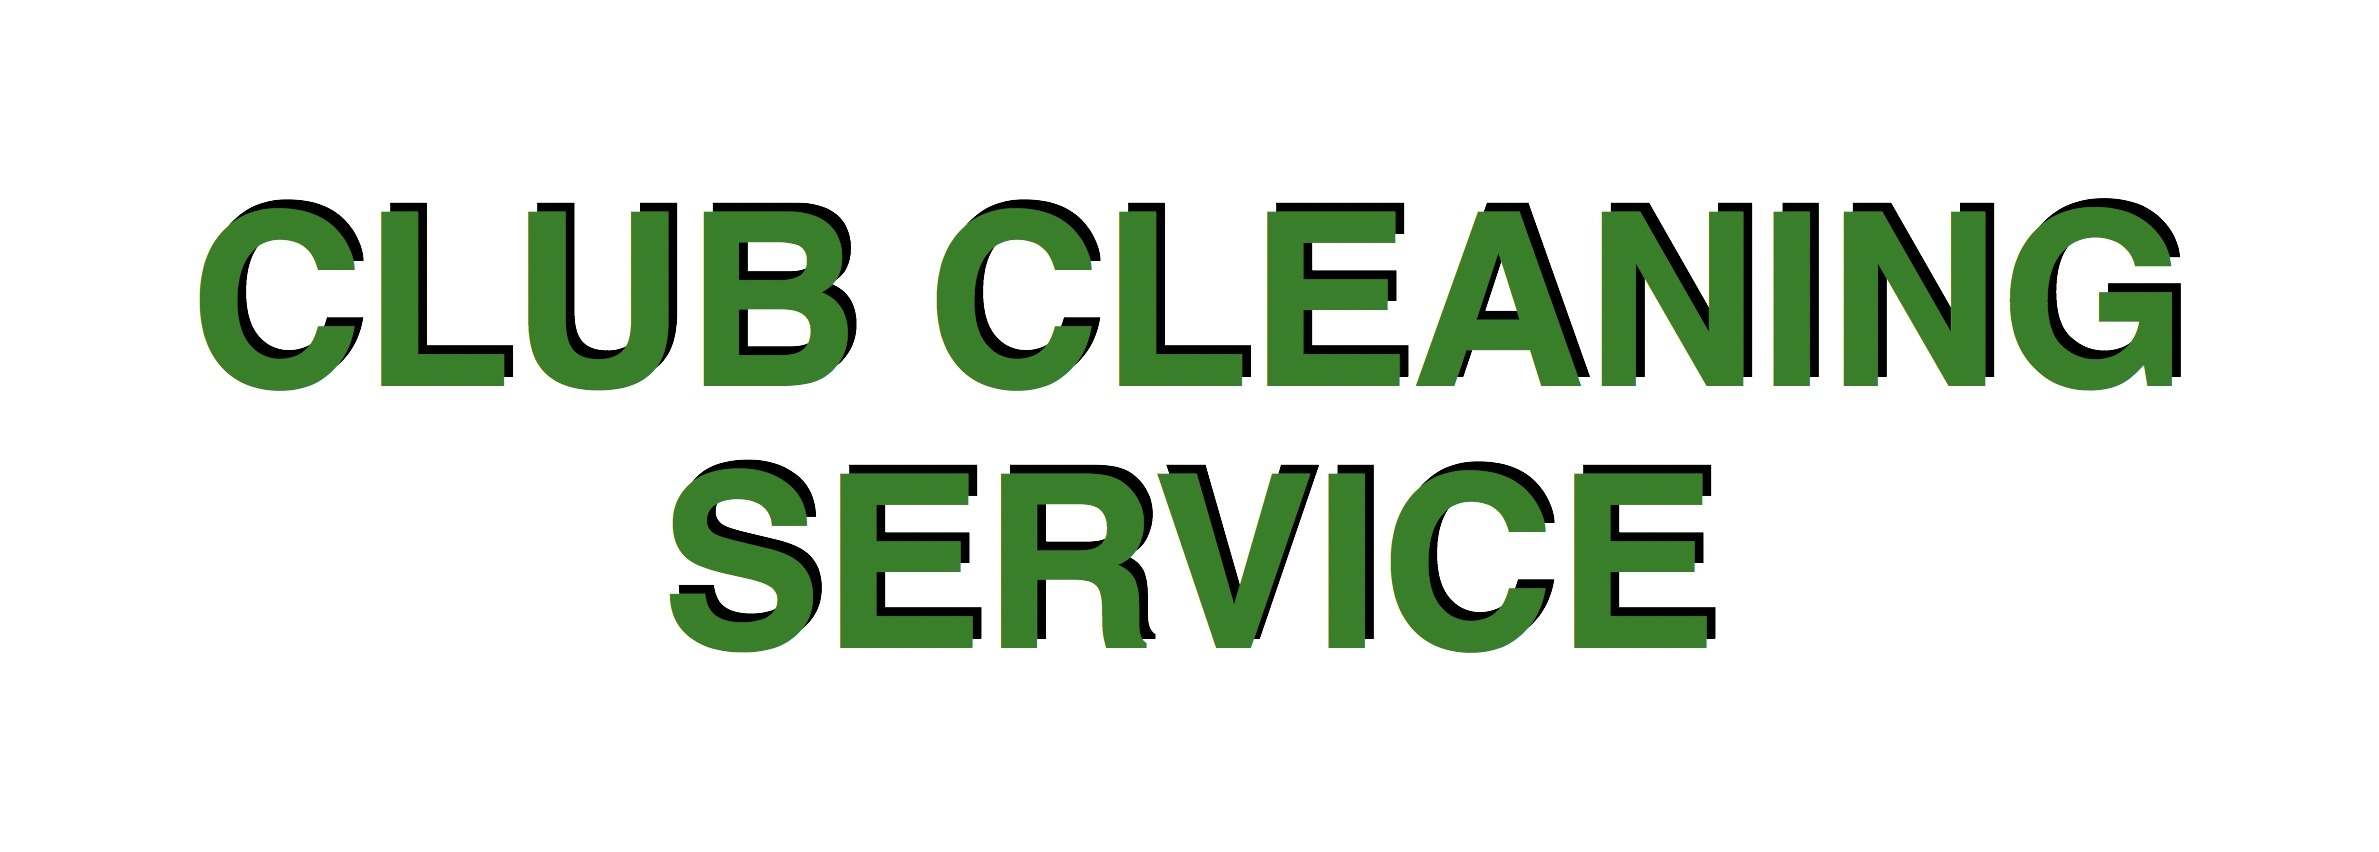 Club Cleaning Service coupon code